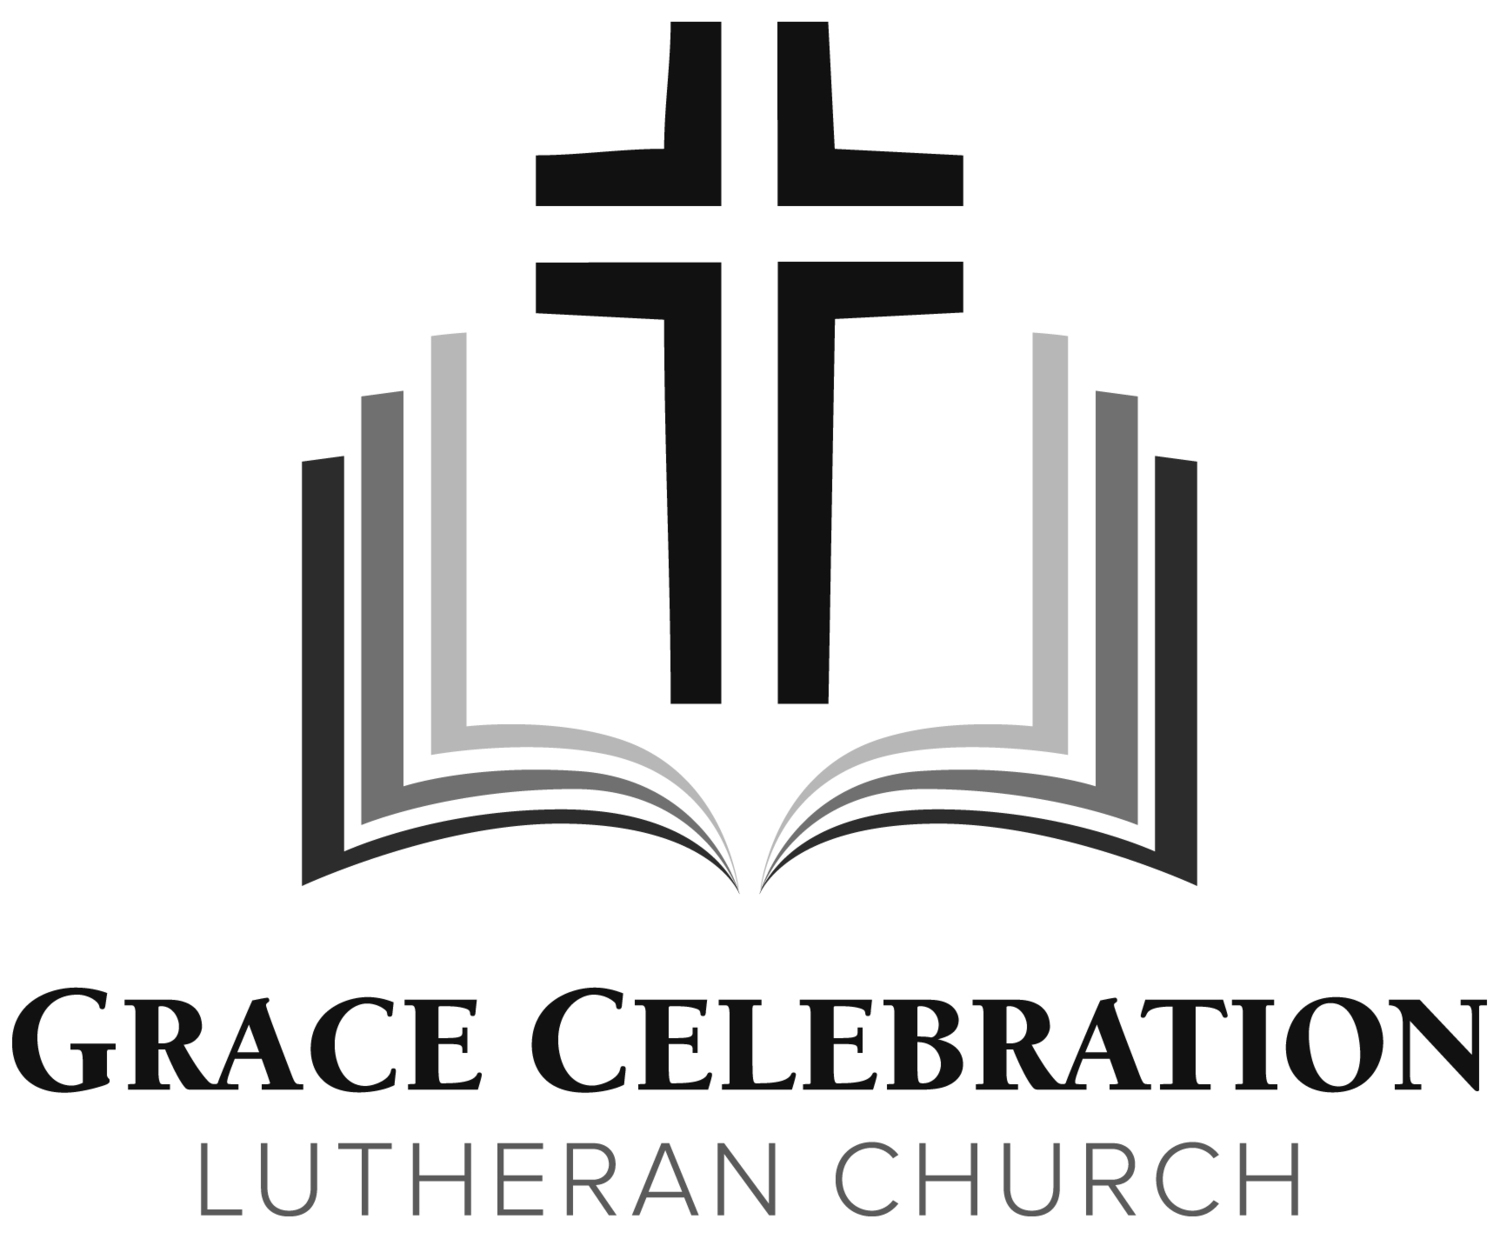 Grace Celebration Lutheran Church